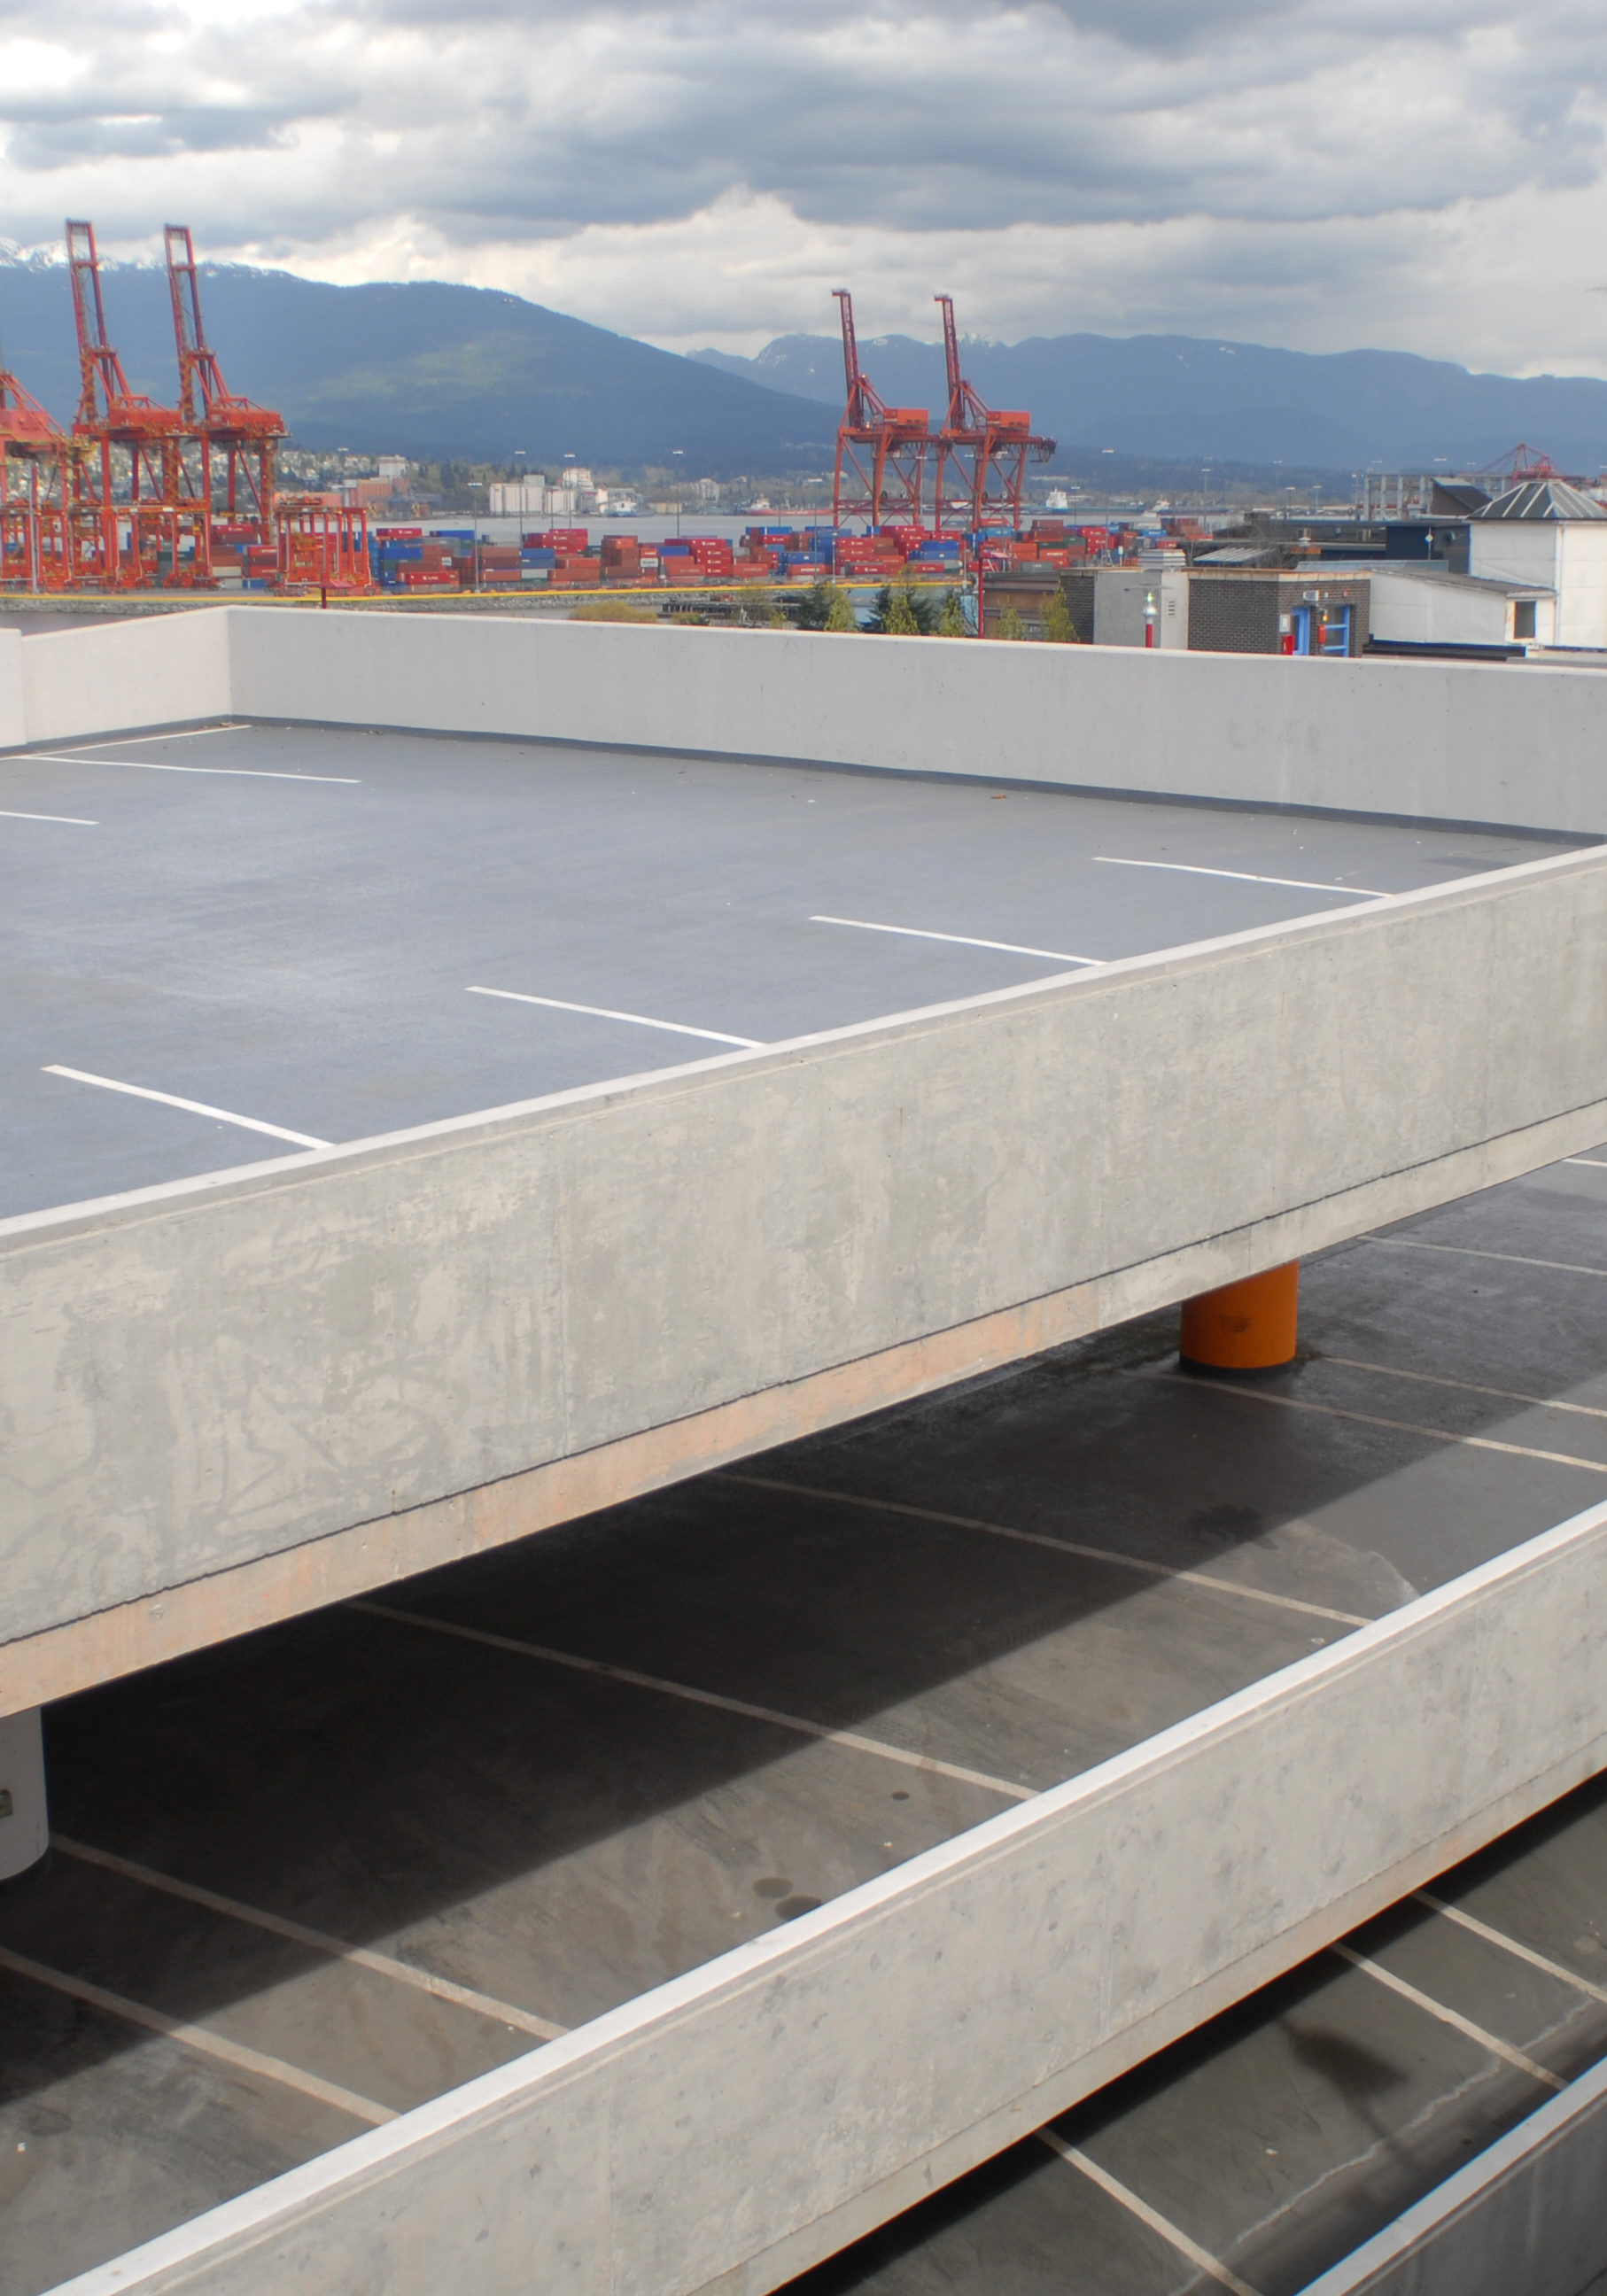 Concrete carparks require waterproofing with Elaston polyurea